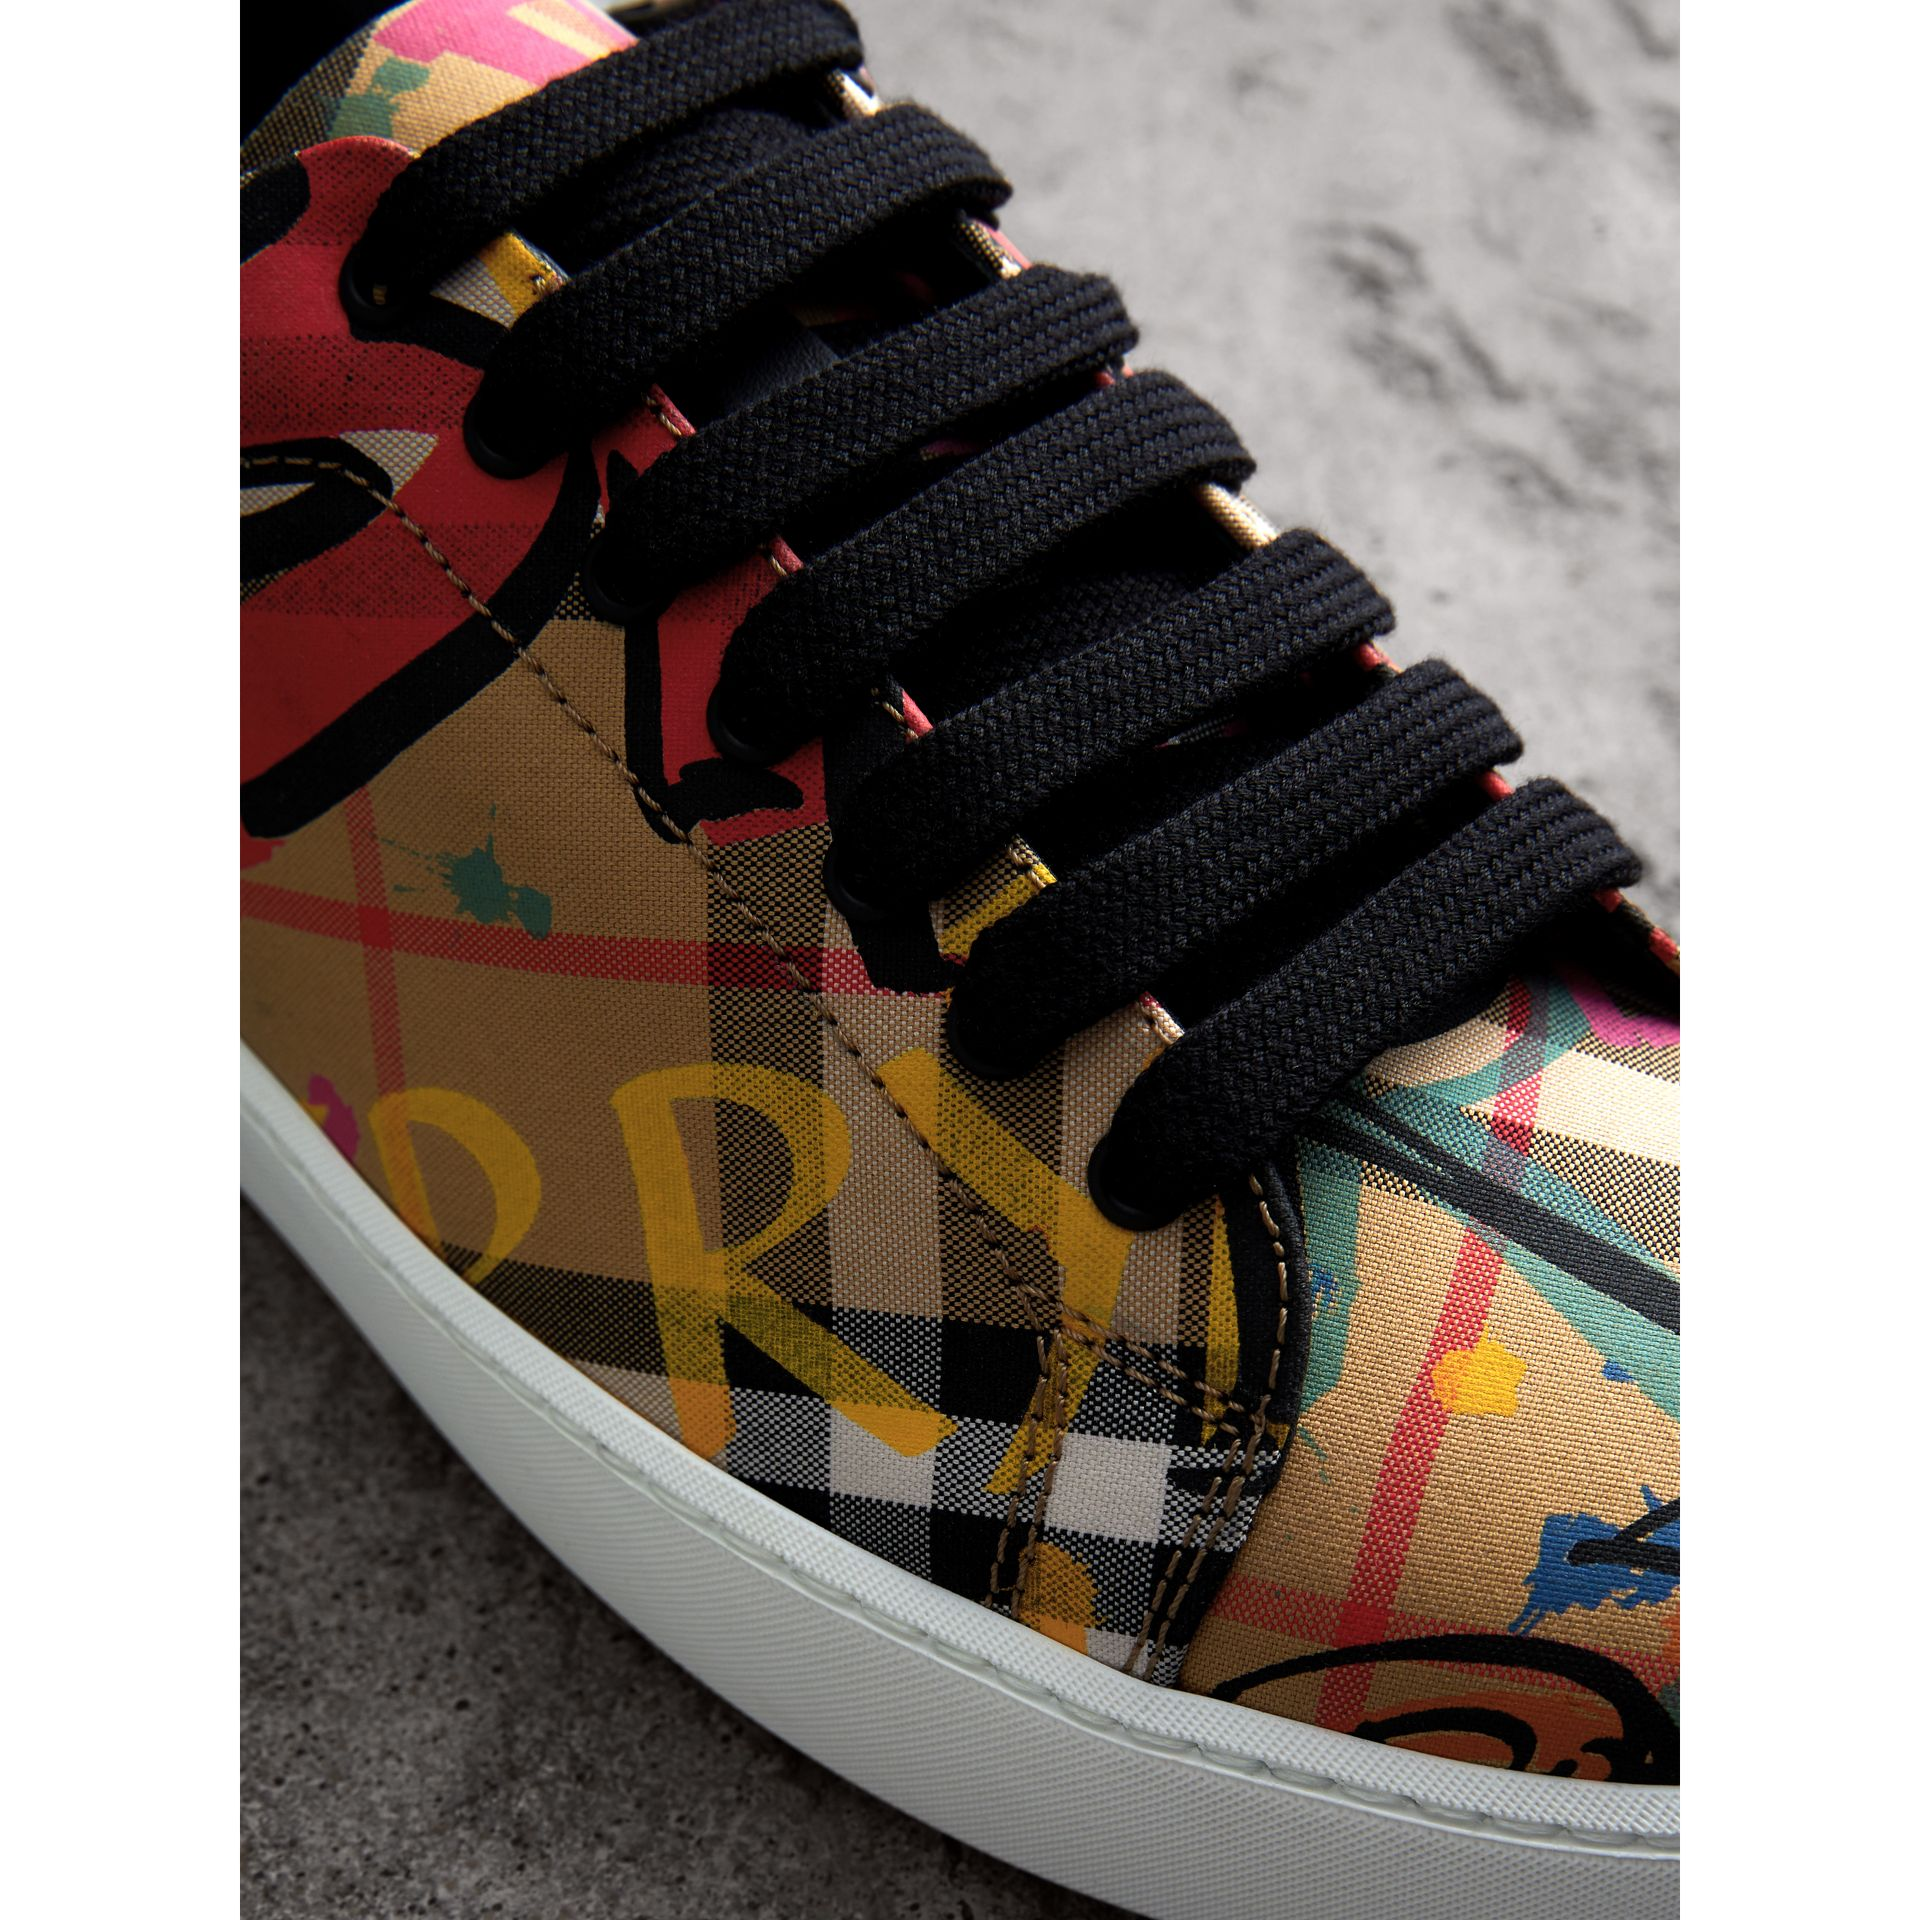 Sneakers à motif Vintage check et imprimé graffiti (Jaune Antique) - Femme | Burberry - photo de la galerie 1